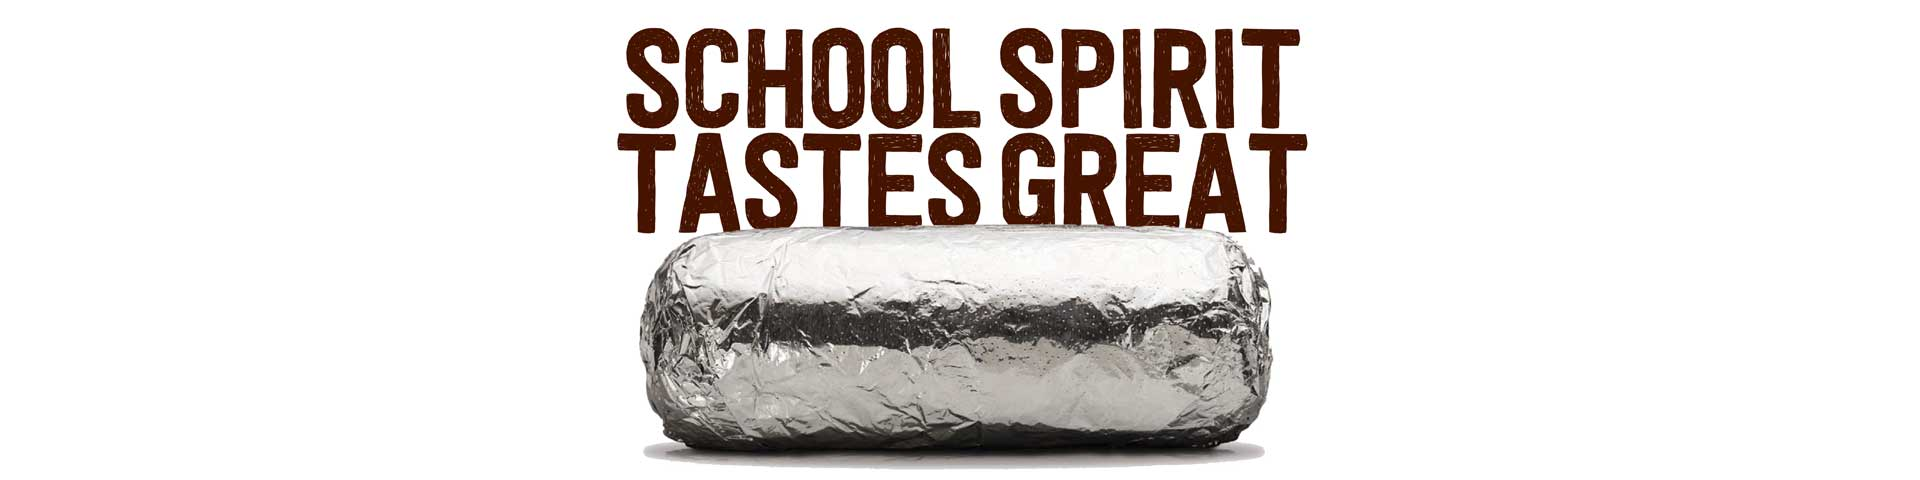 "Chipotle fundraising slogan, ""School Spirit Tastes Great"" over a picture of a wrapped burrito."